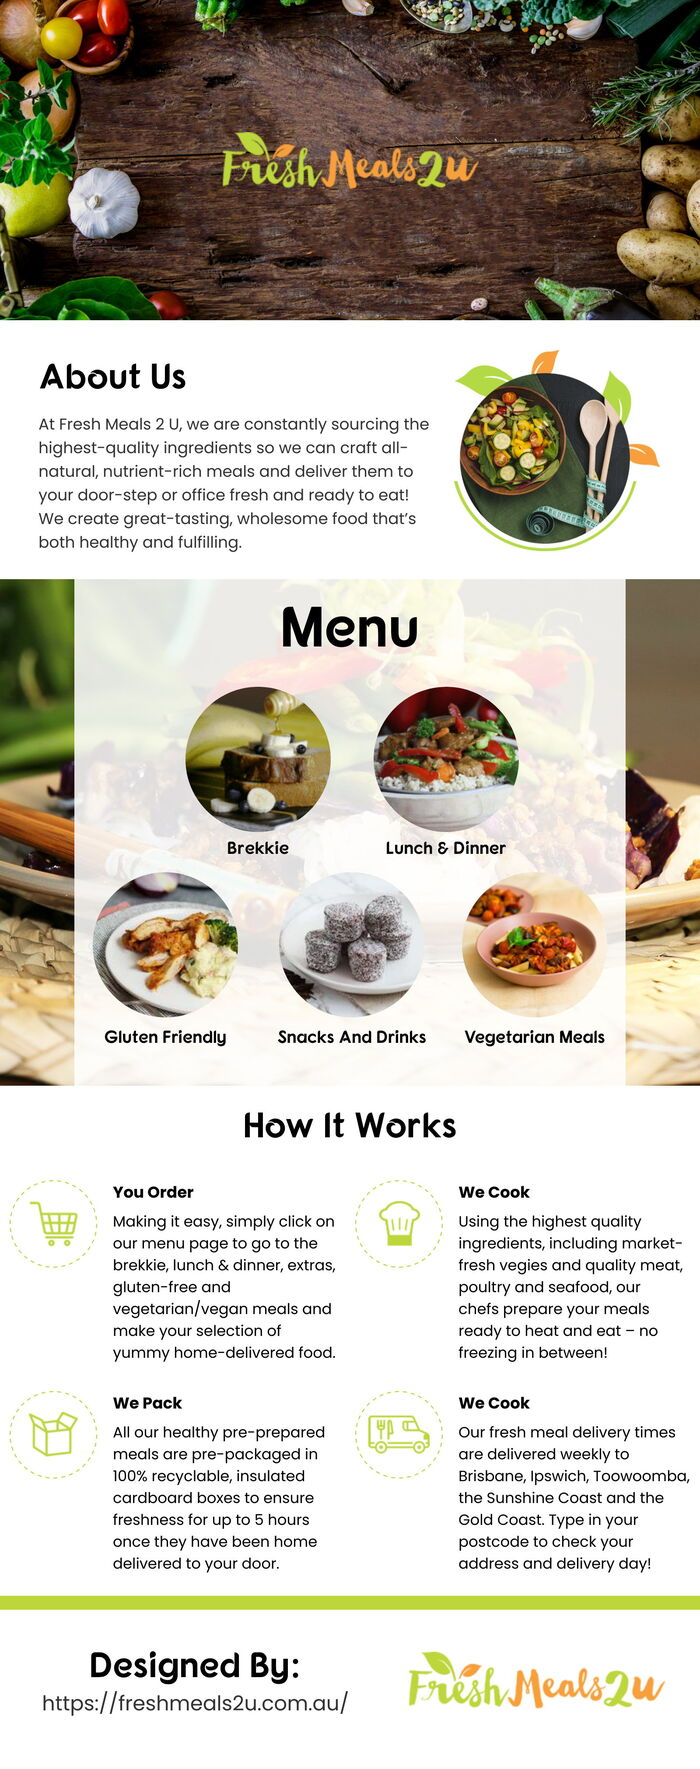 This infographic is designed by Fresh Meals to U